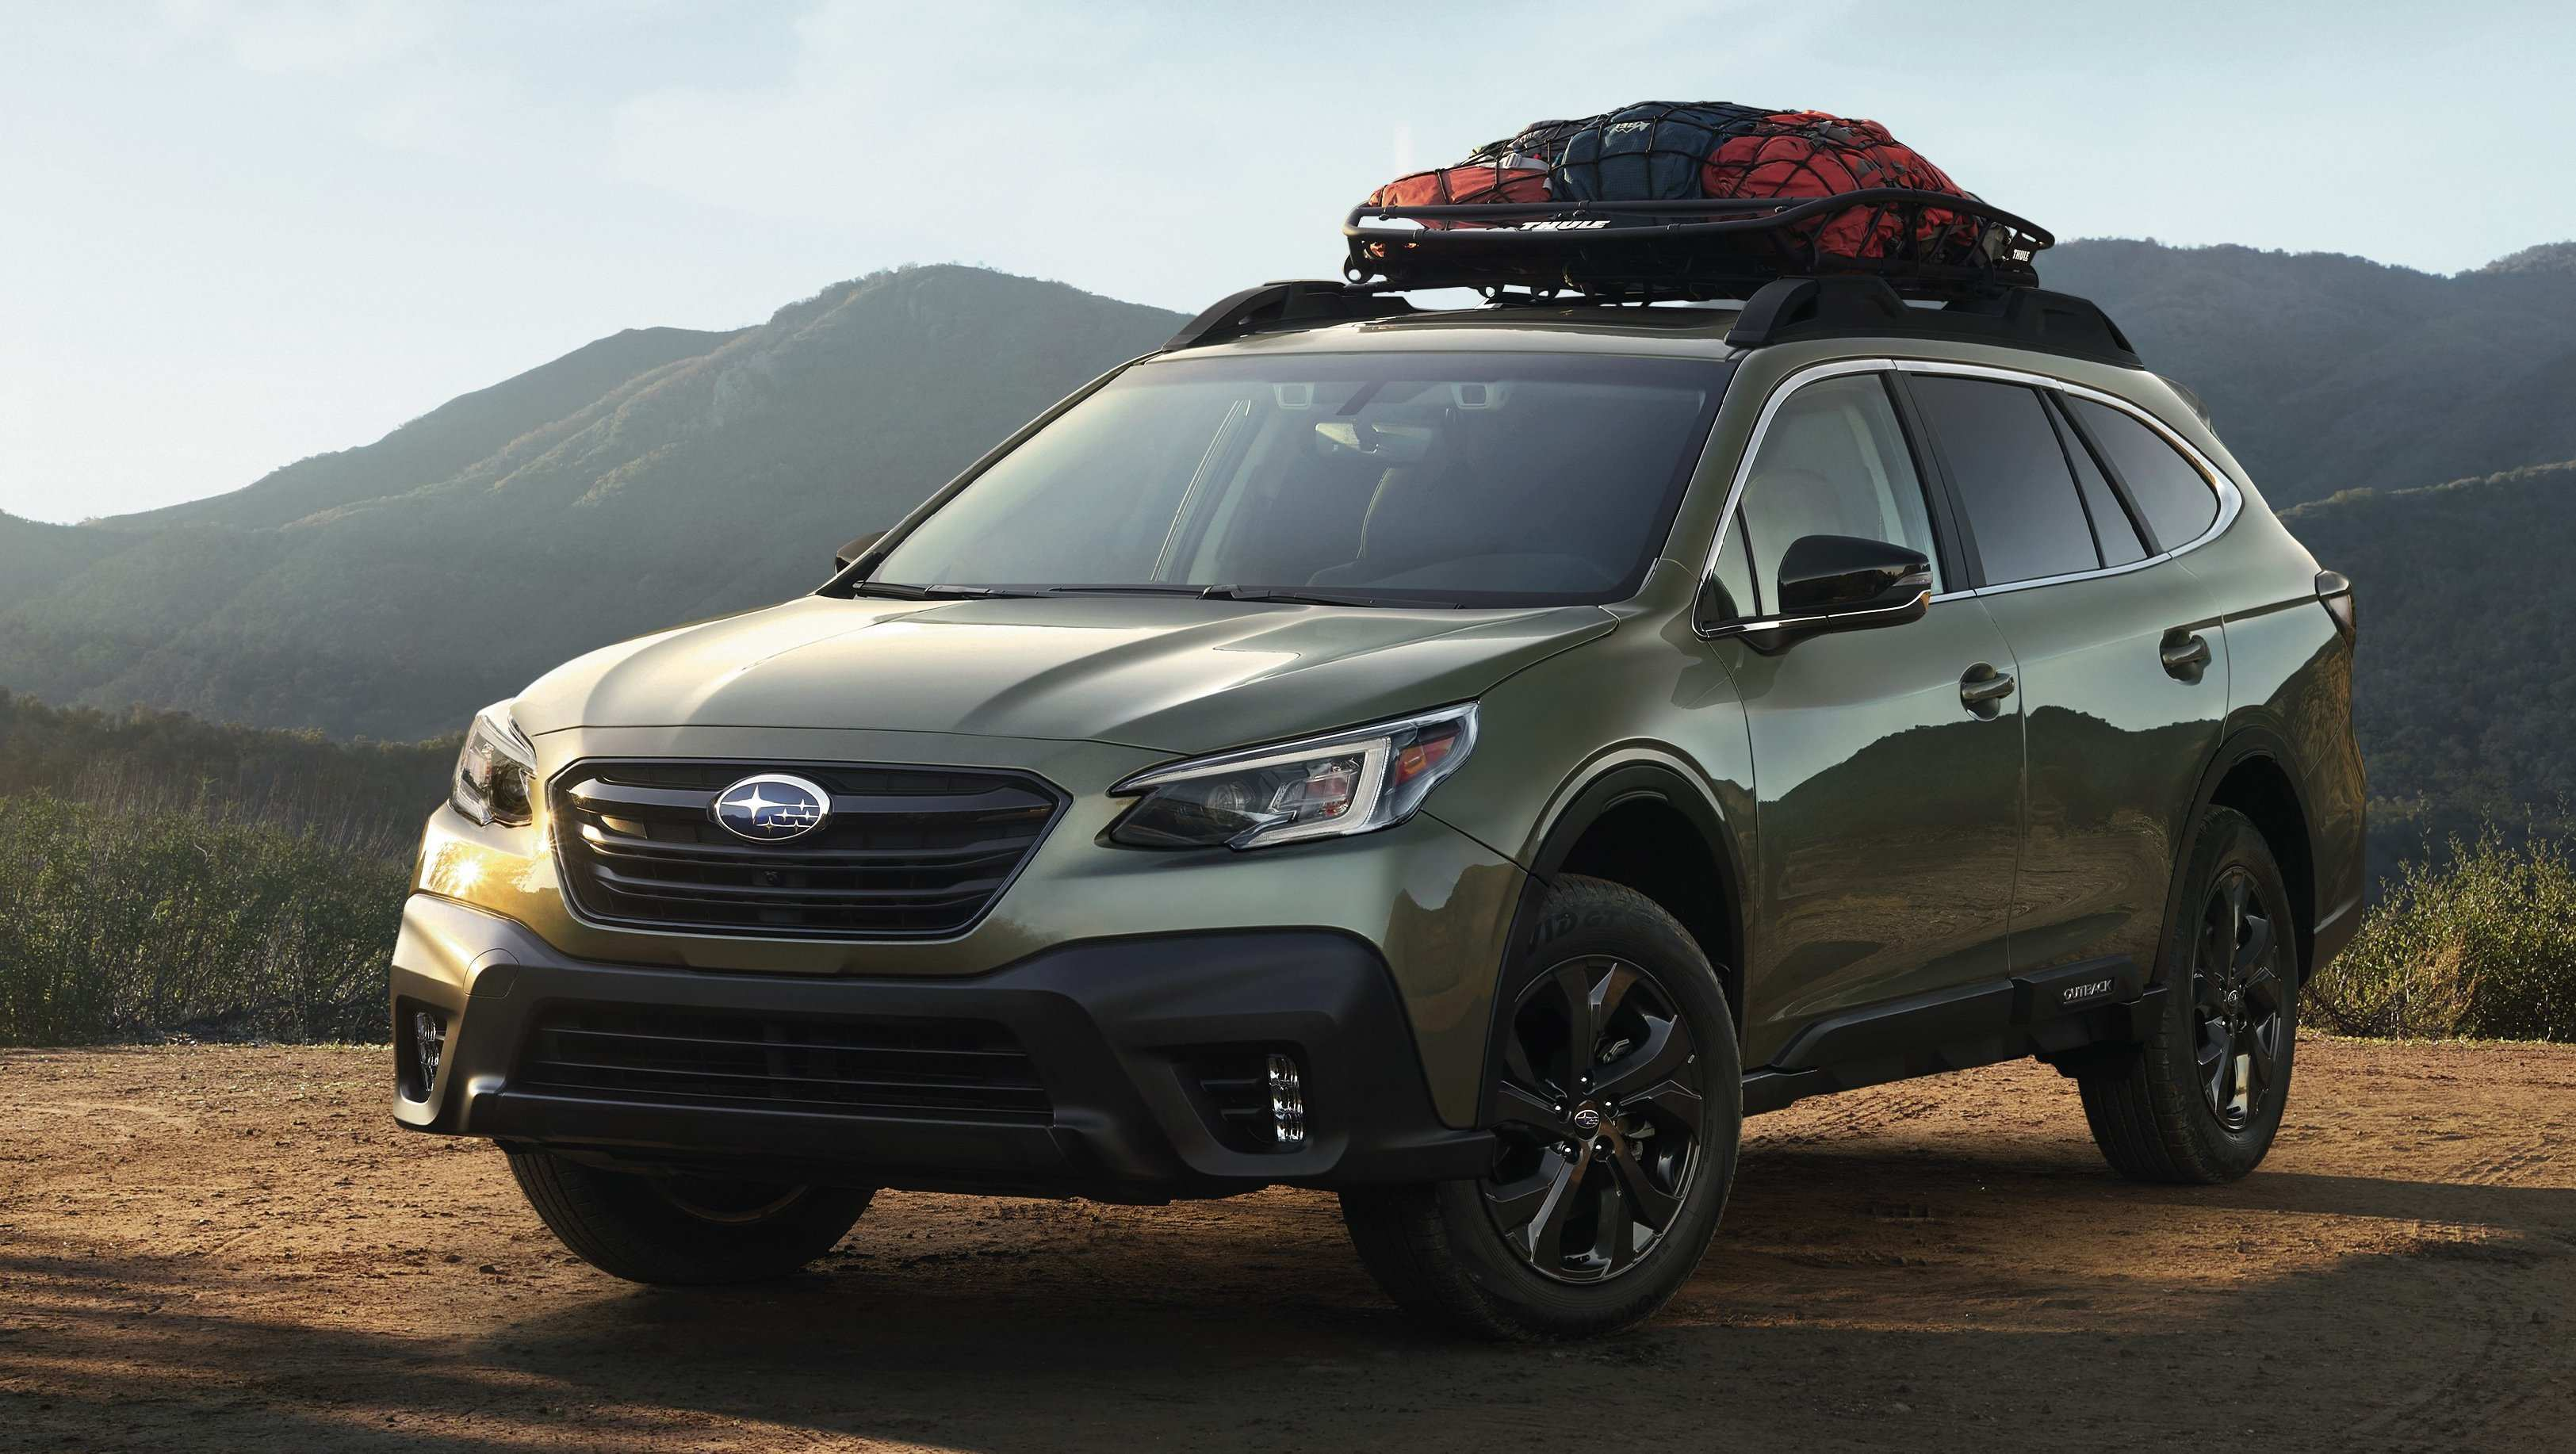 53 All New 2020 Subaru Outback Dimensions Photos for 2020 Subaru Outback Dimensions